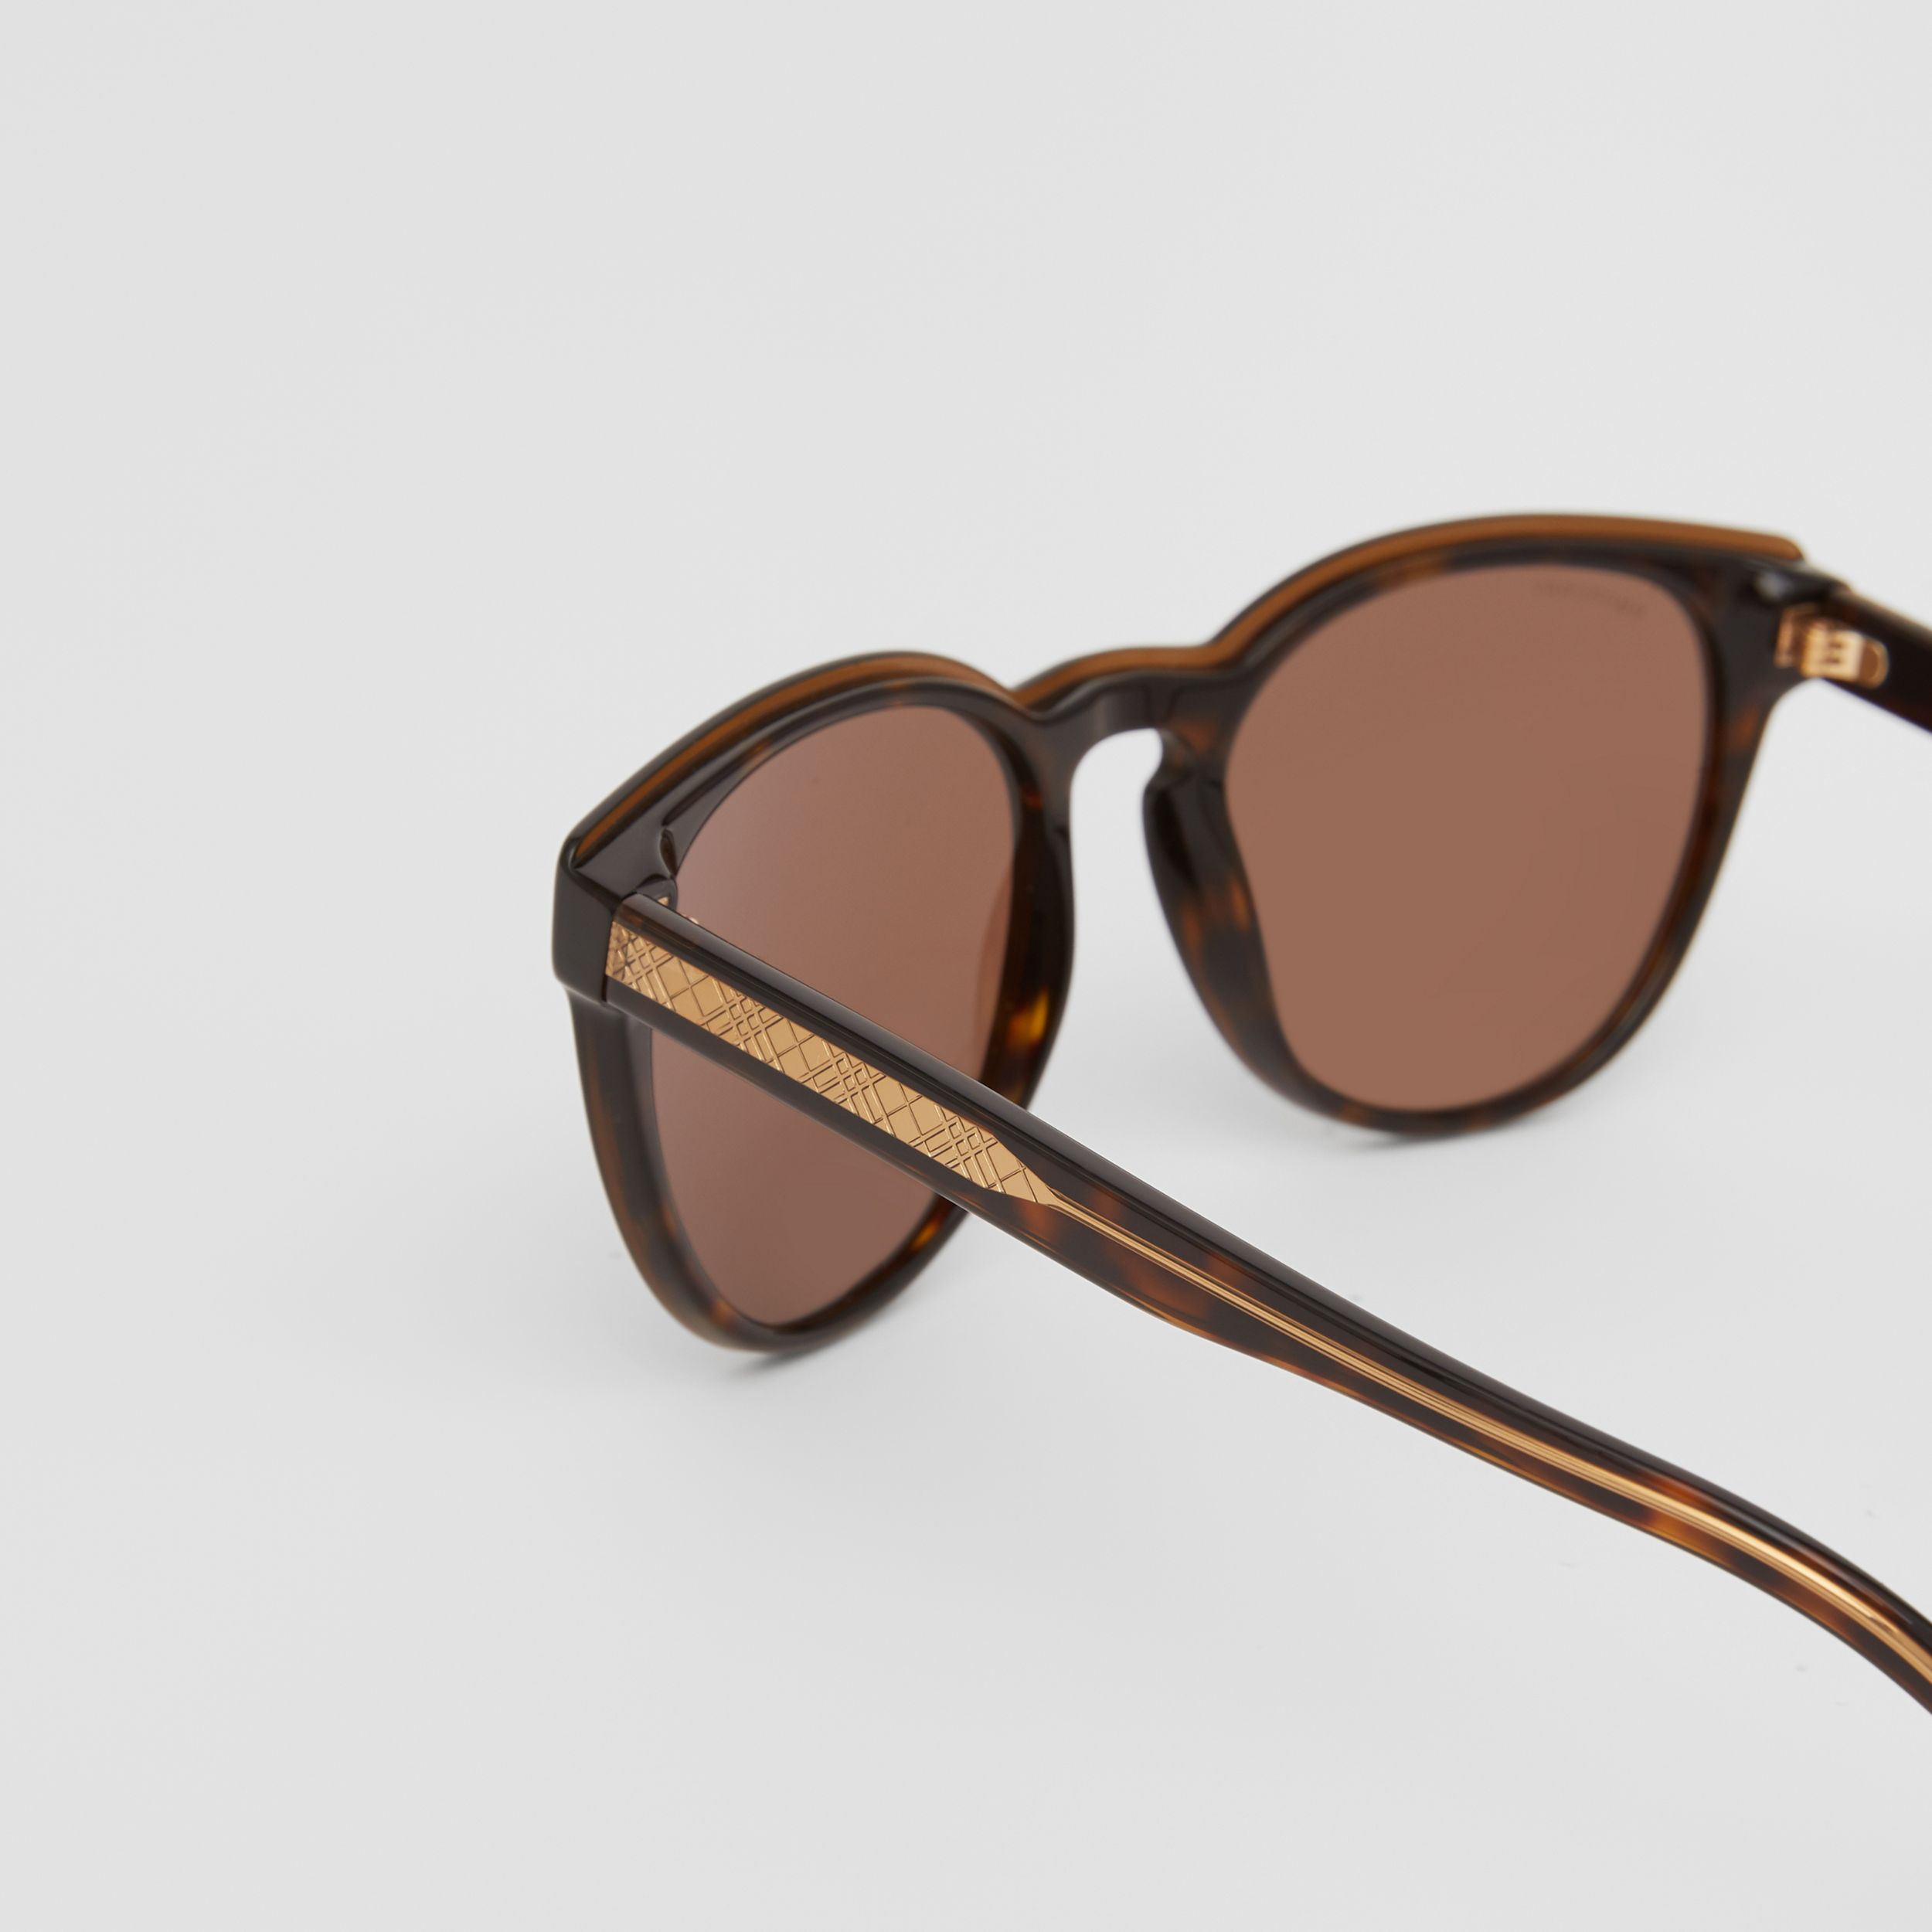 Round Frame Sunglasses in Tortoiseshell - Men | Burberry - 2